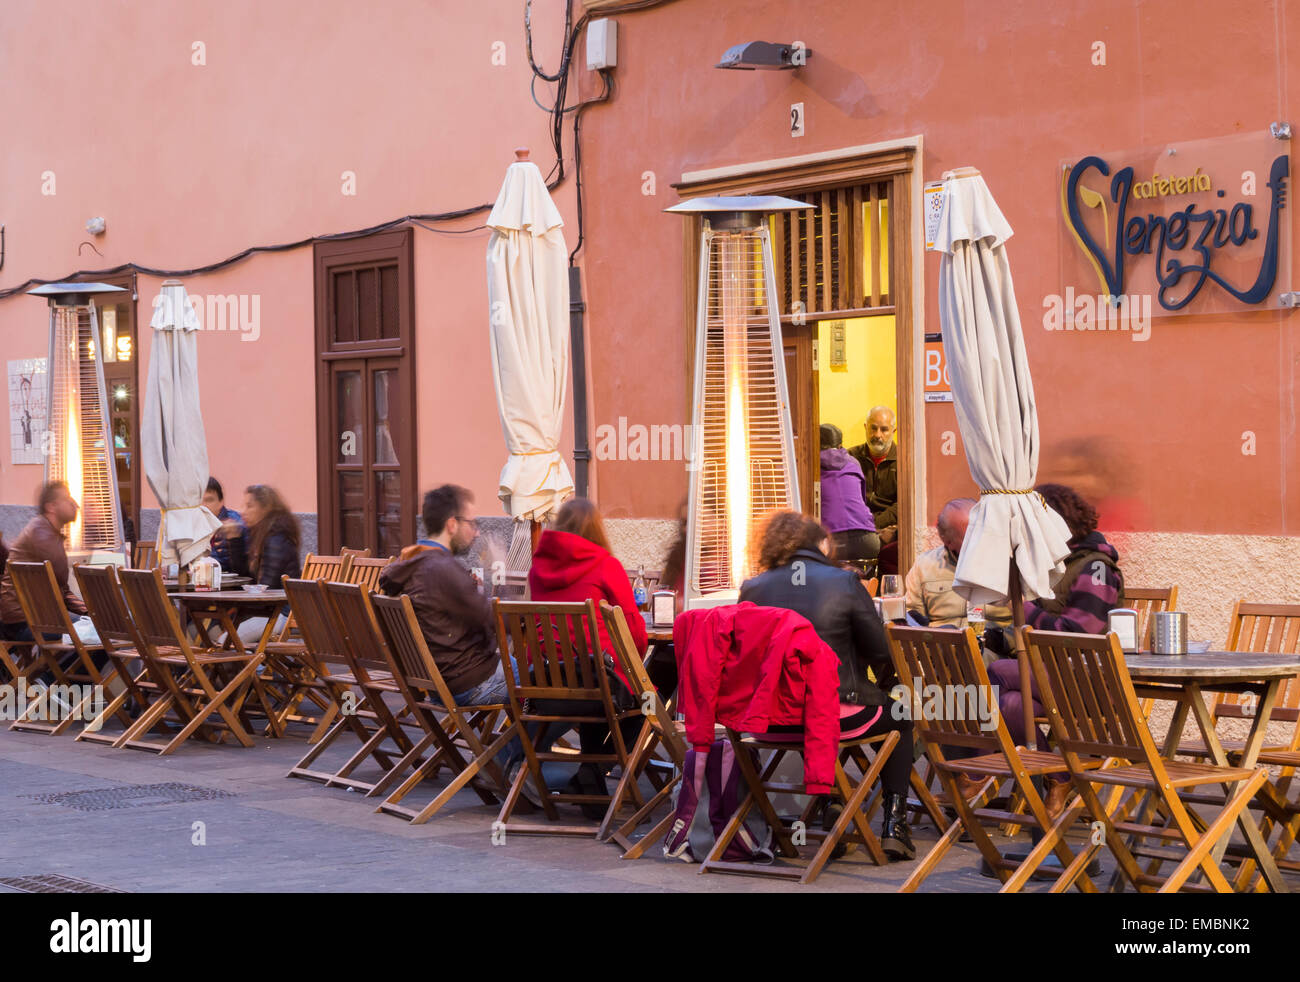 Patio heaters outside street bar at night in San Cristobal de La Laguna, Tenerife, Canary Islands, Spain - Stock Image